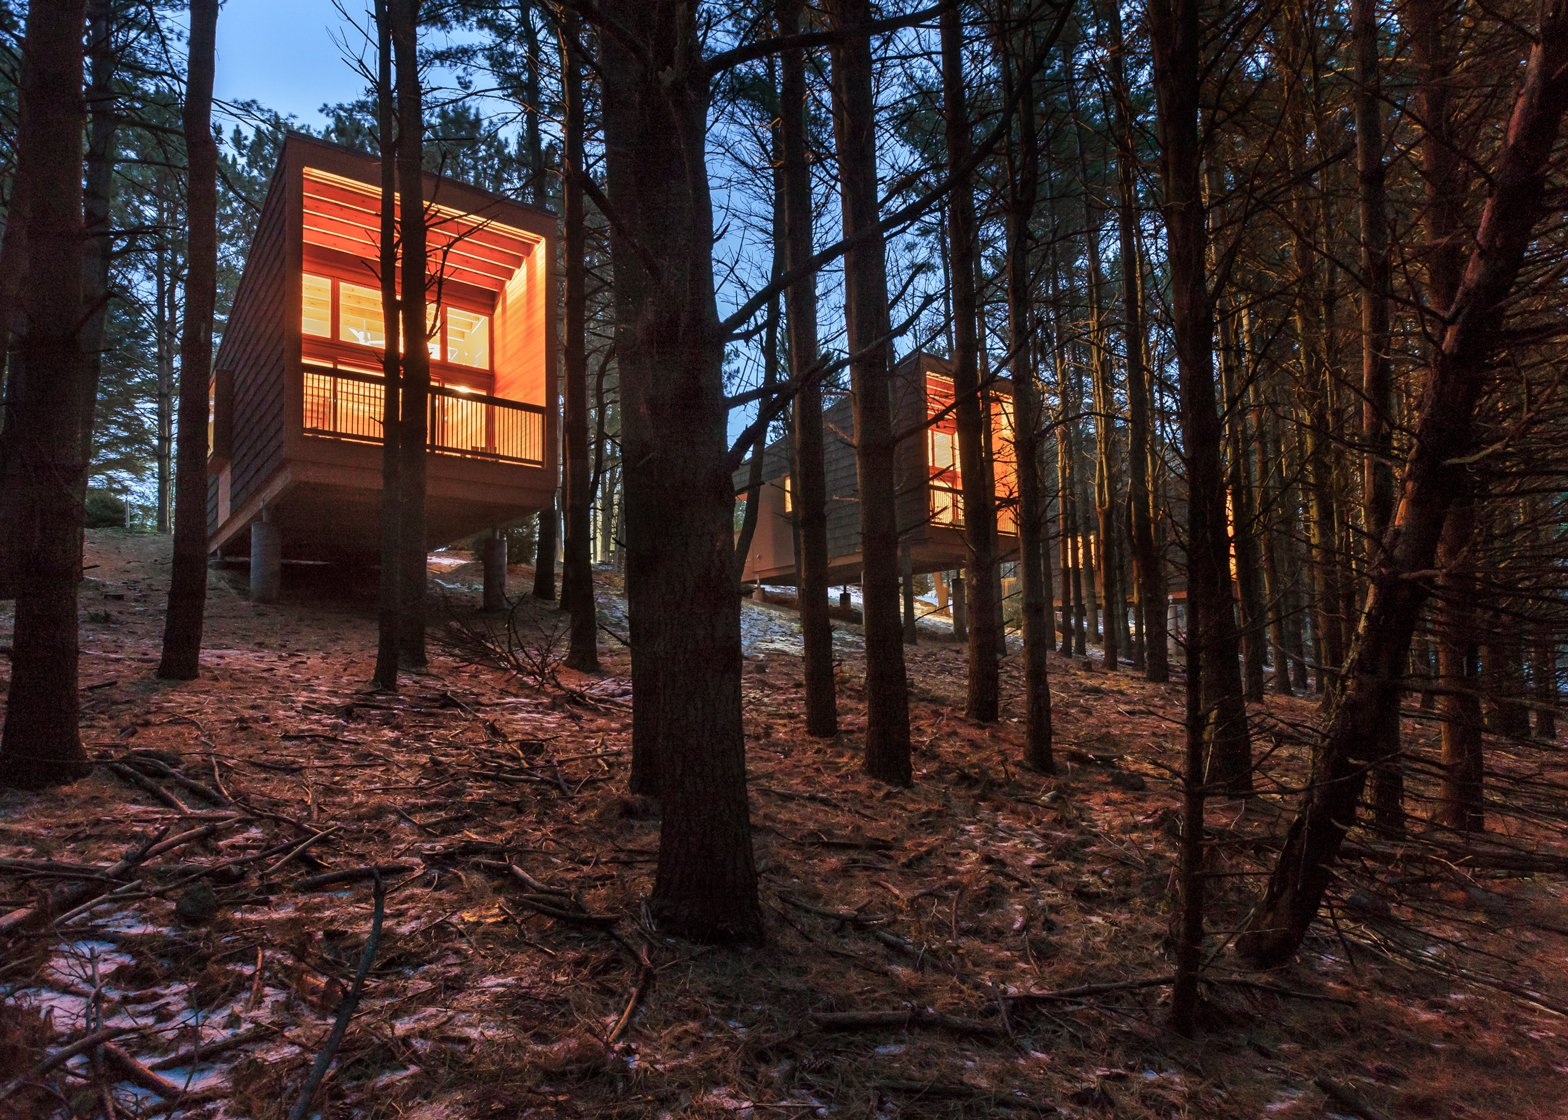 Whitetail Woods Regional Park Camper Cabins; Farmington, Minnesota by HGA. Photography by Paul Crosby & Peter VonDeLinde